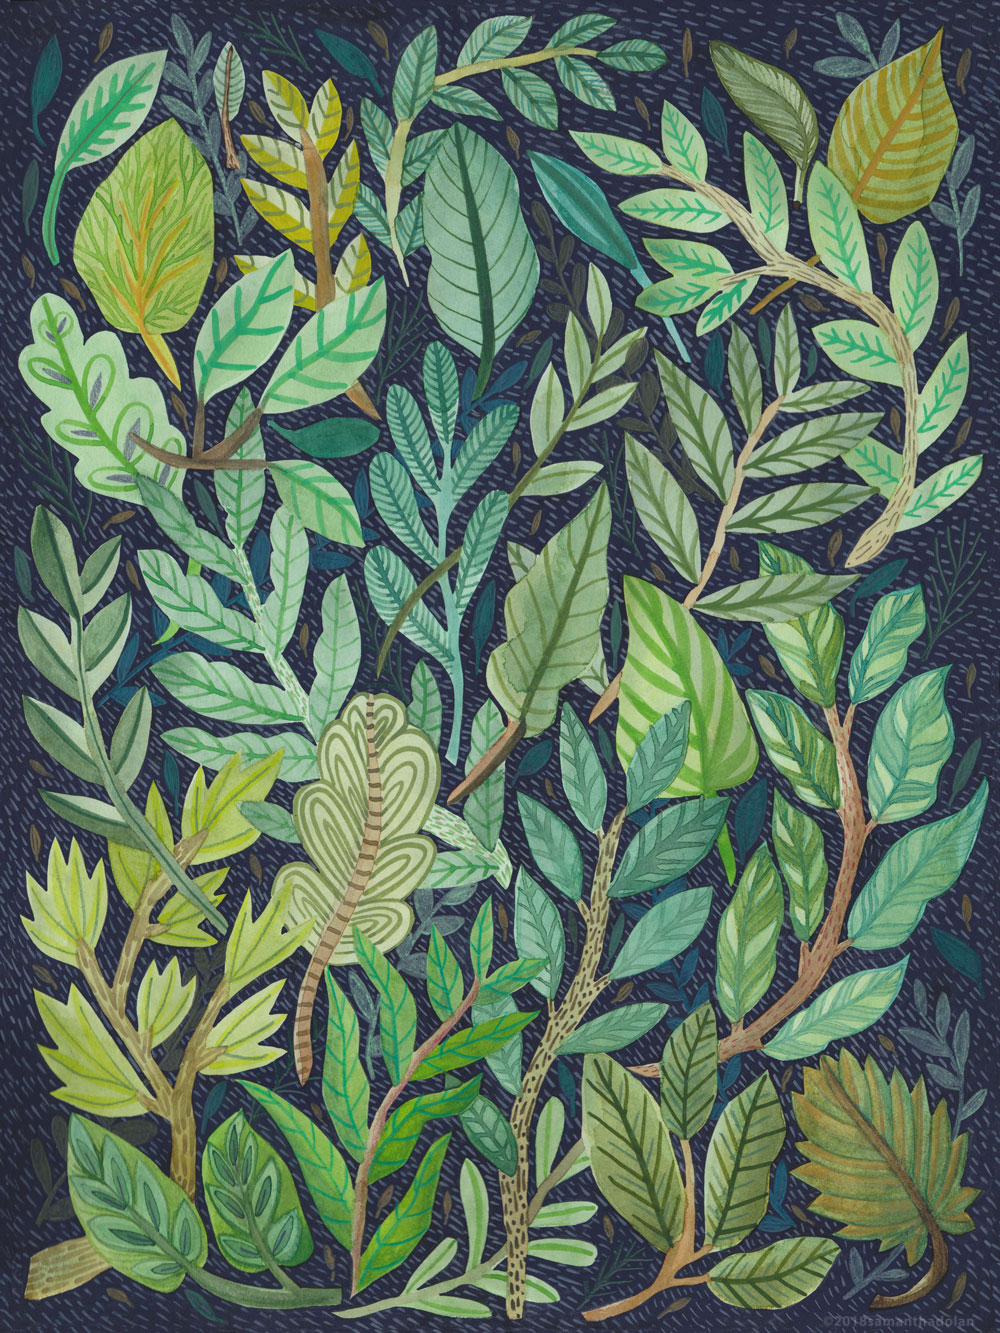 The Forest Floor, Gouache on Paper, 2018